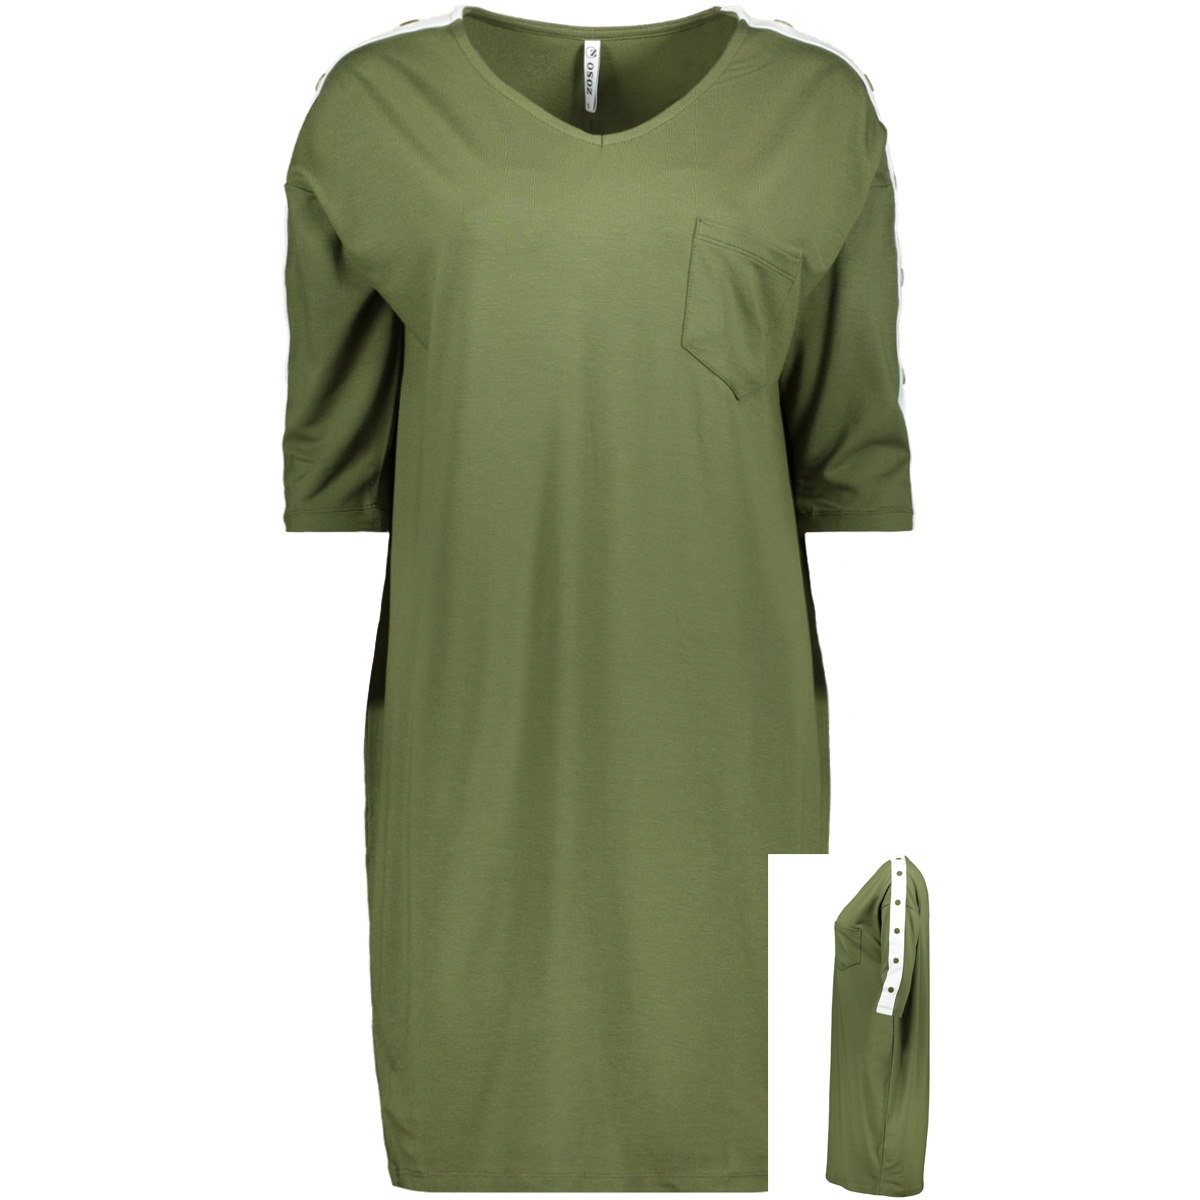 sporty tunic with buttons hr1921 zoso jurk army/offwhite